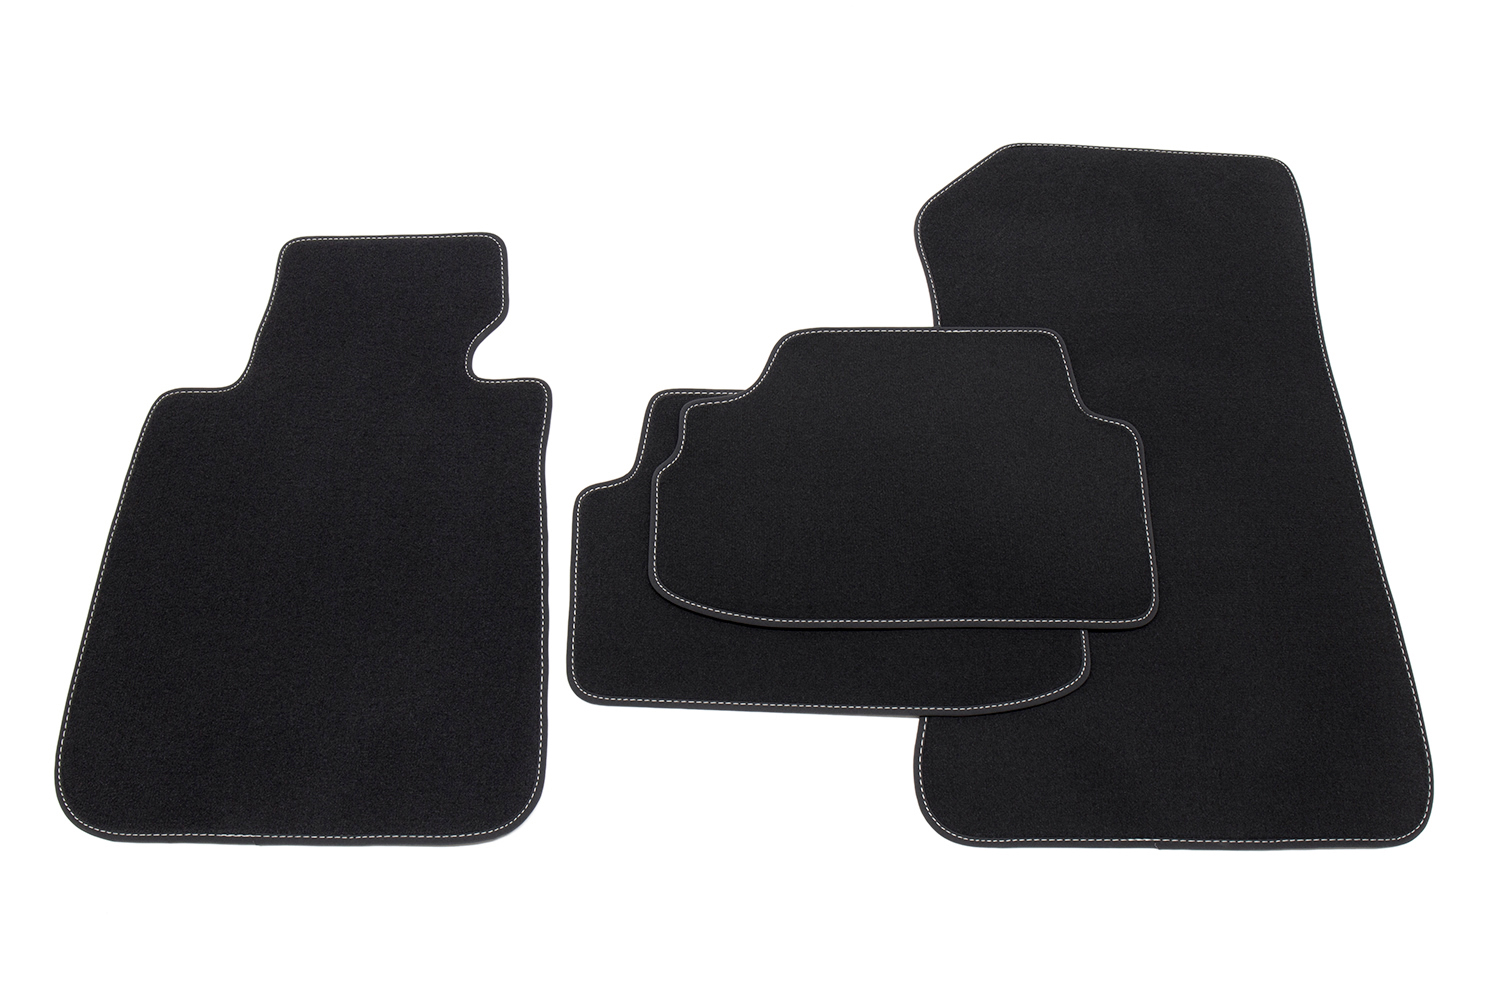 exclusive tapis de sol de voitures adapt pour bmw s rie 1 e81 e88 tapis de sol pour bmw exclusive. Black Bedroom Furniture Sets. Home Design Ideas